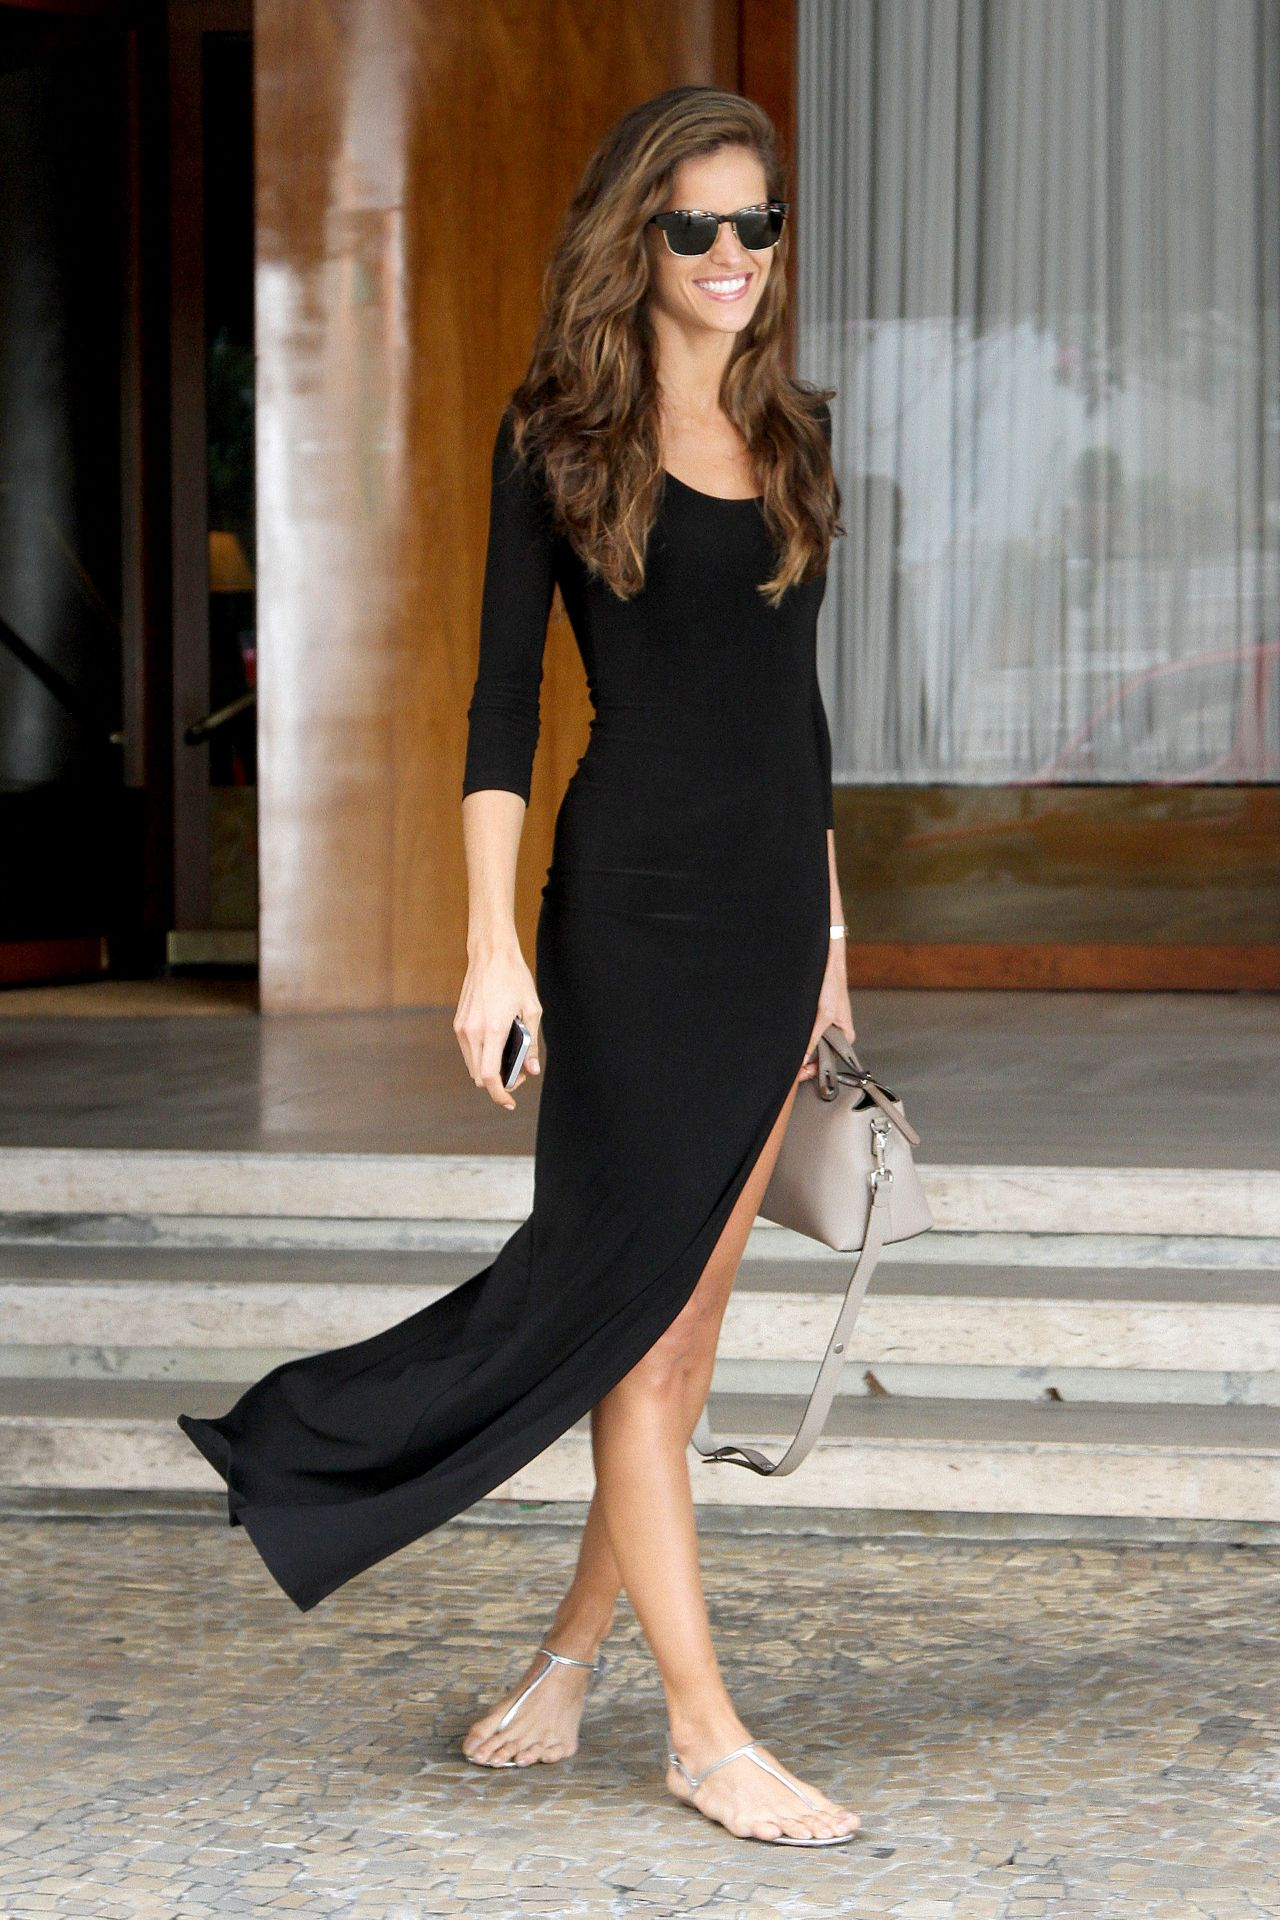 Izabel Goulart in Black Dress - Sao Paulo, April 2014